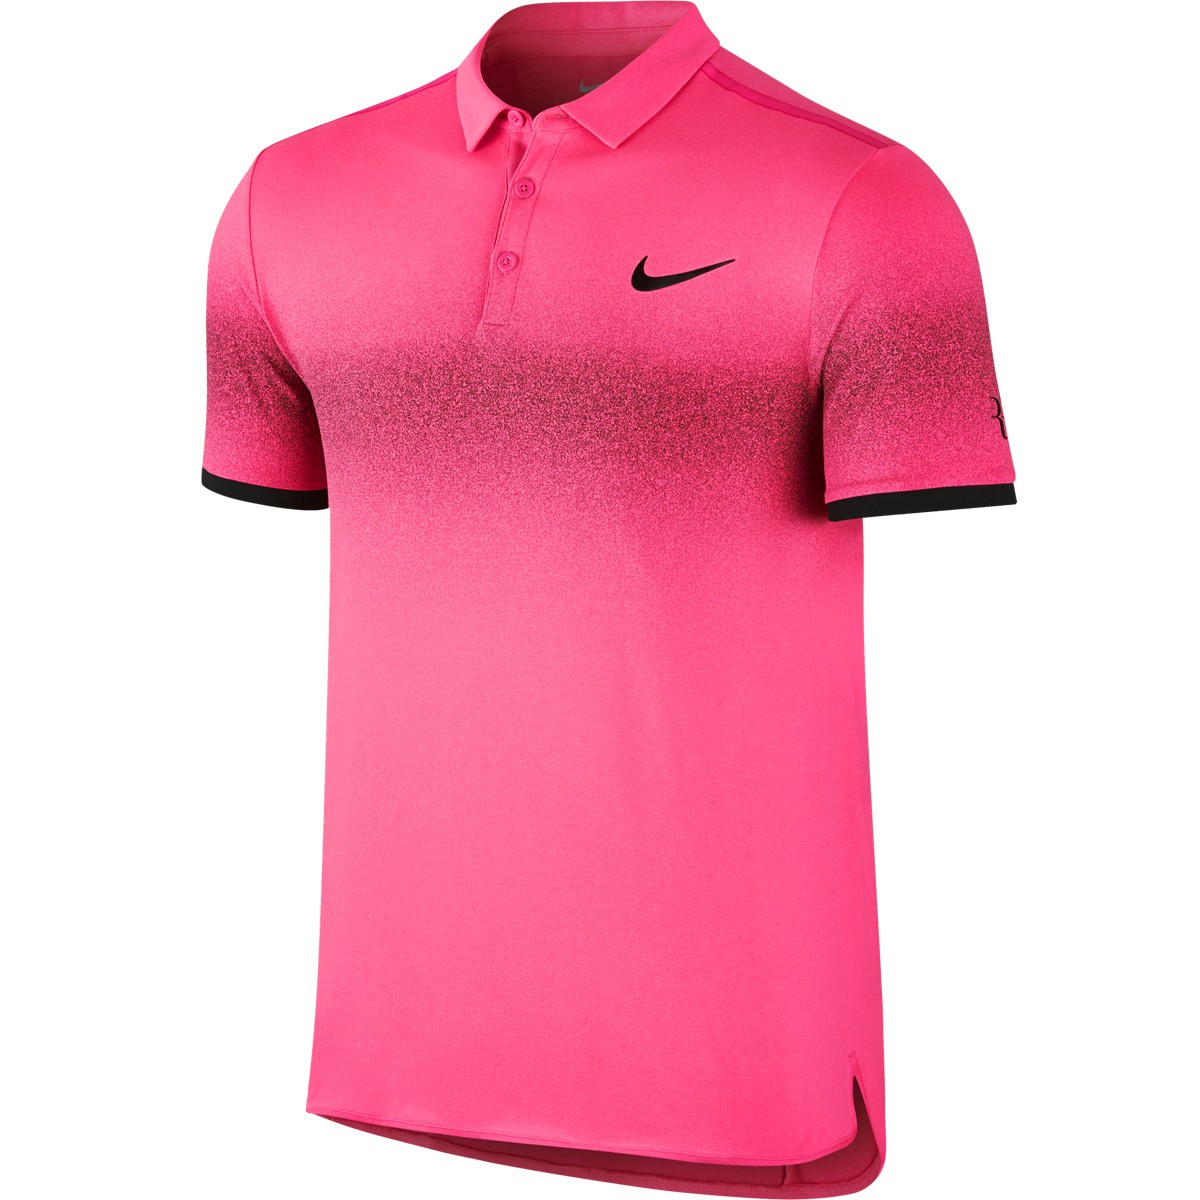 POLO NIKE JUNIOR FEDERER ADVANTAGE NIKE Junior